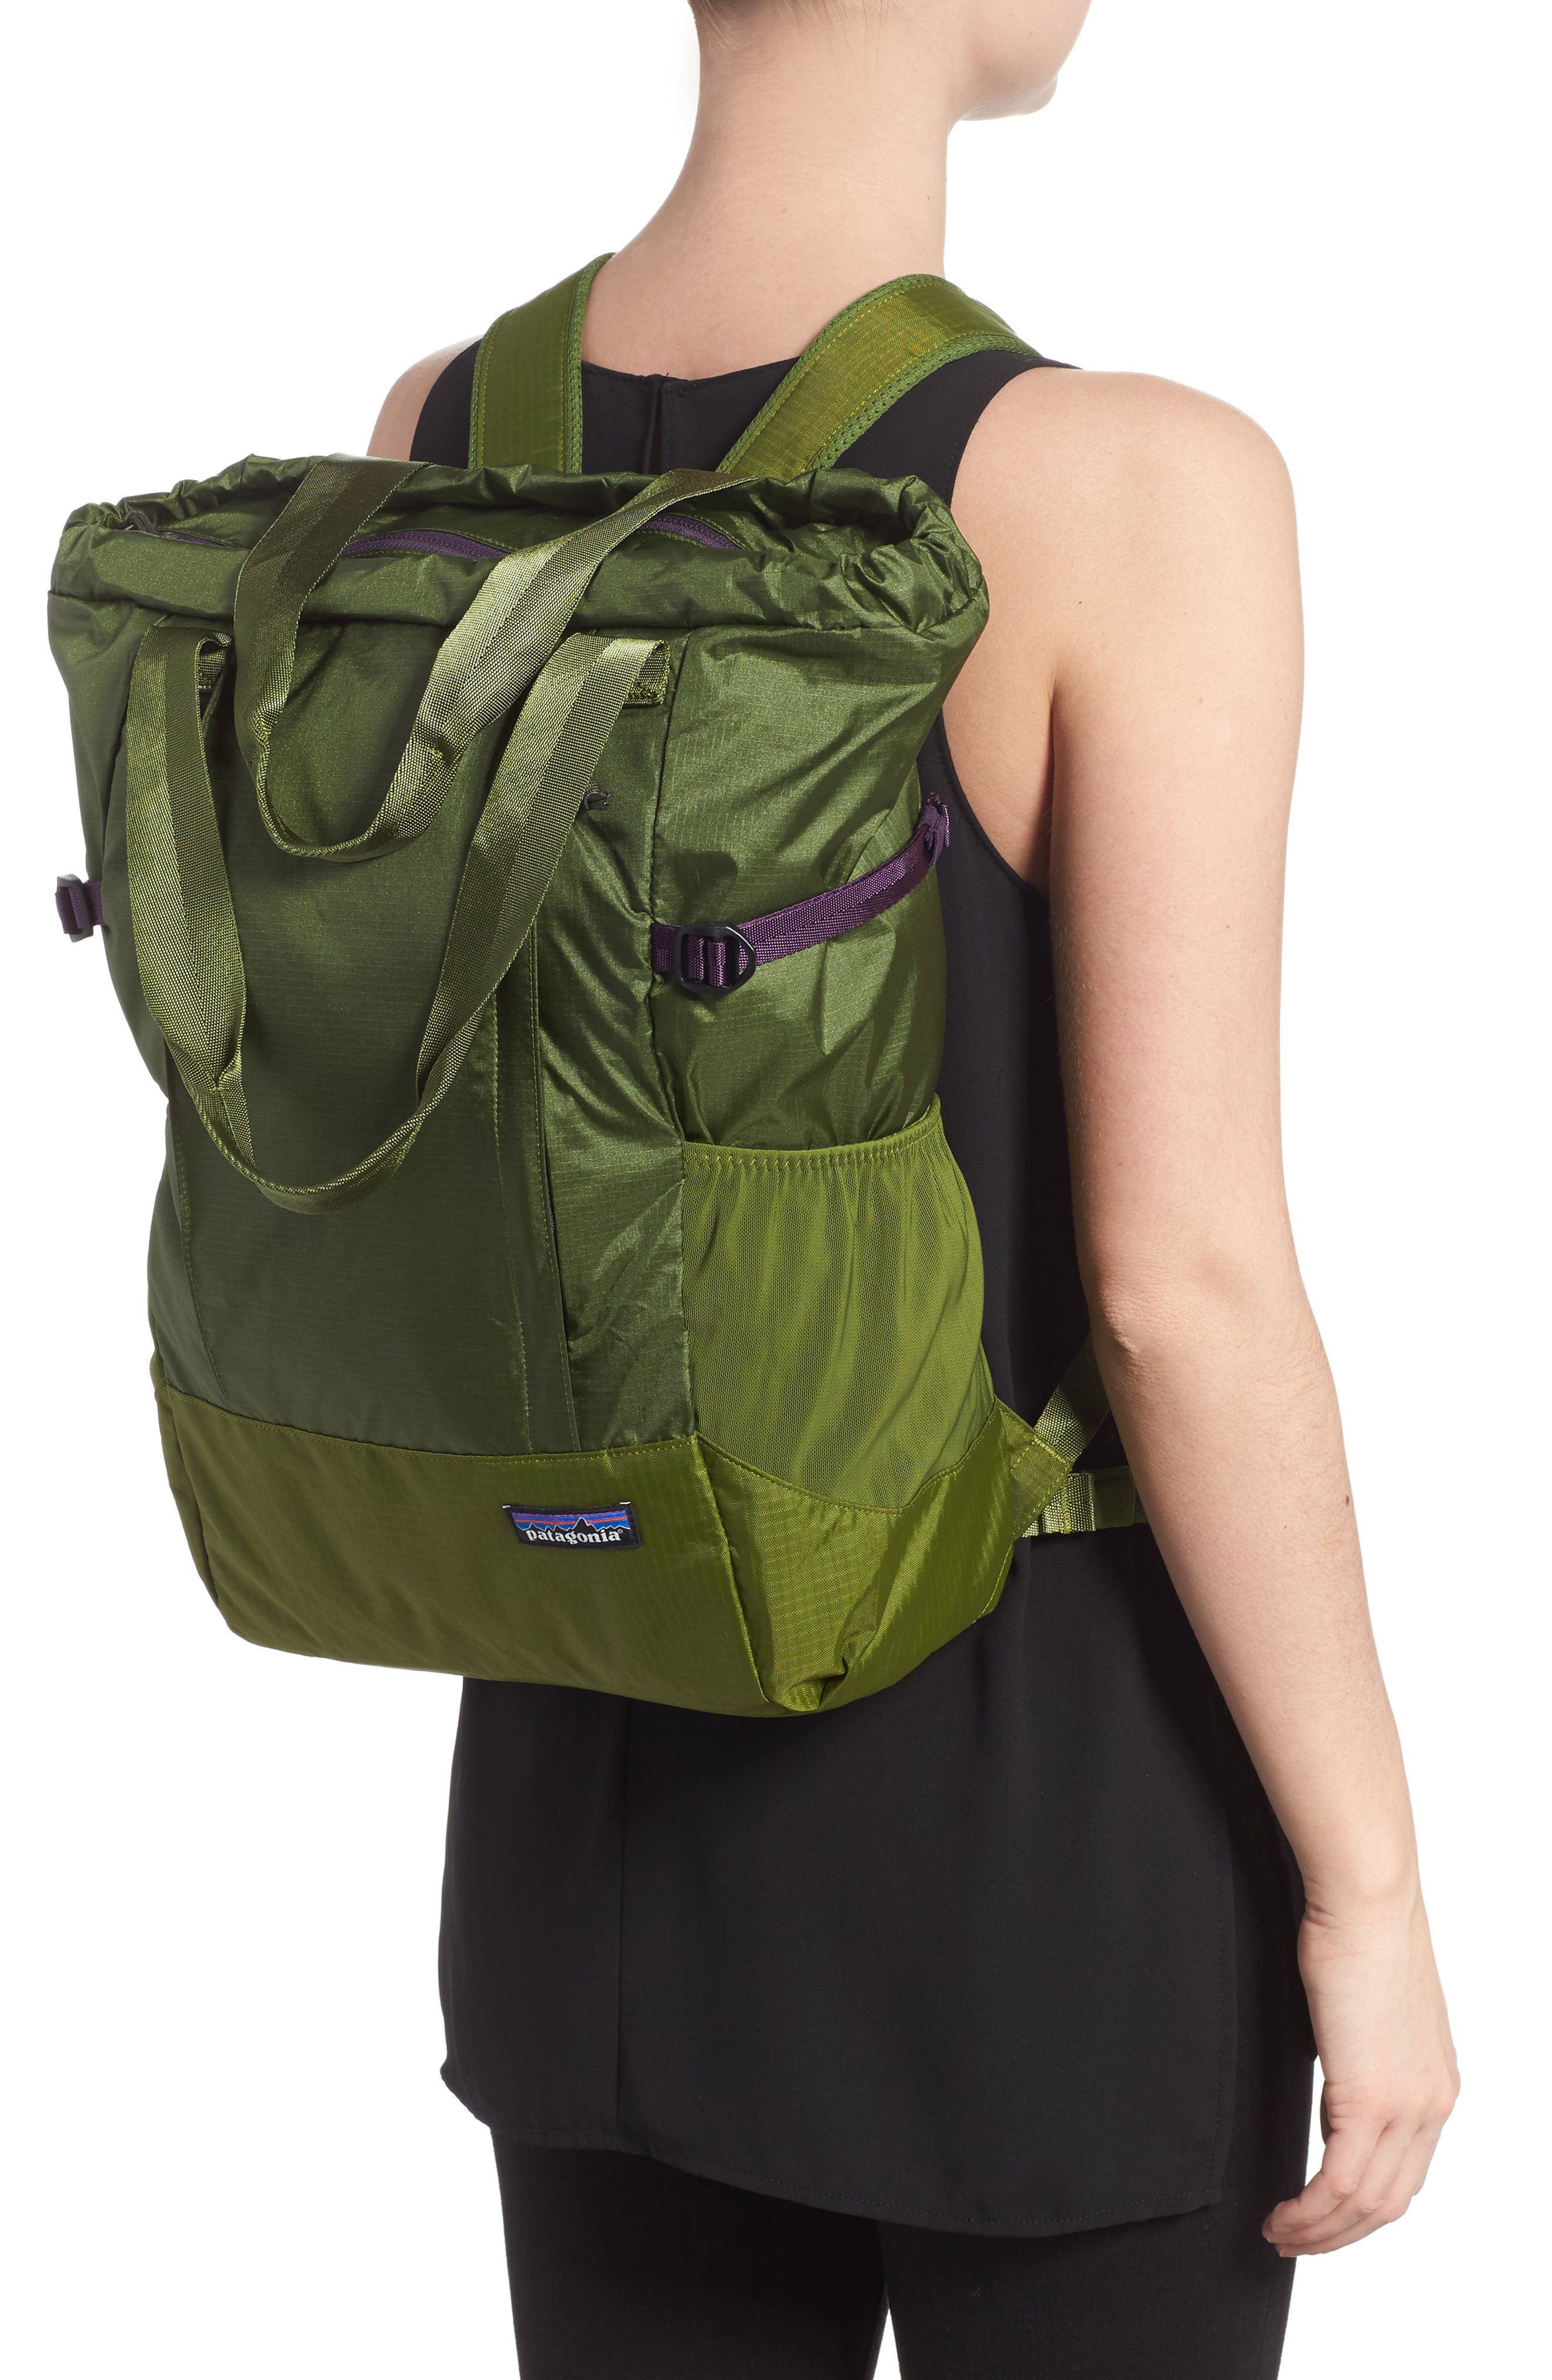 Lightweight Travel Tote Pack,                             Alternate thumbnail 2, color,                             305